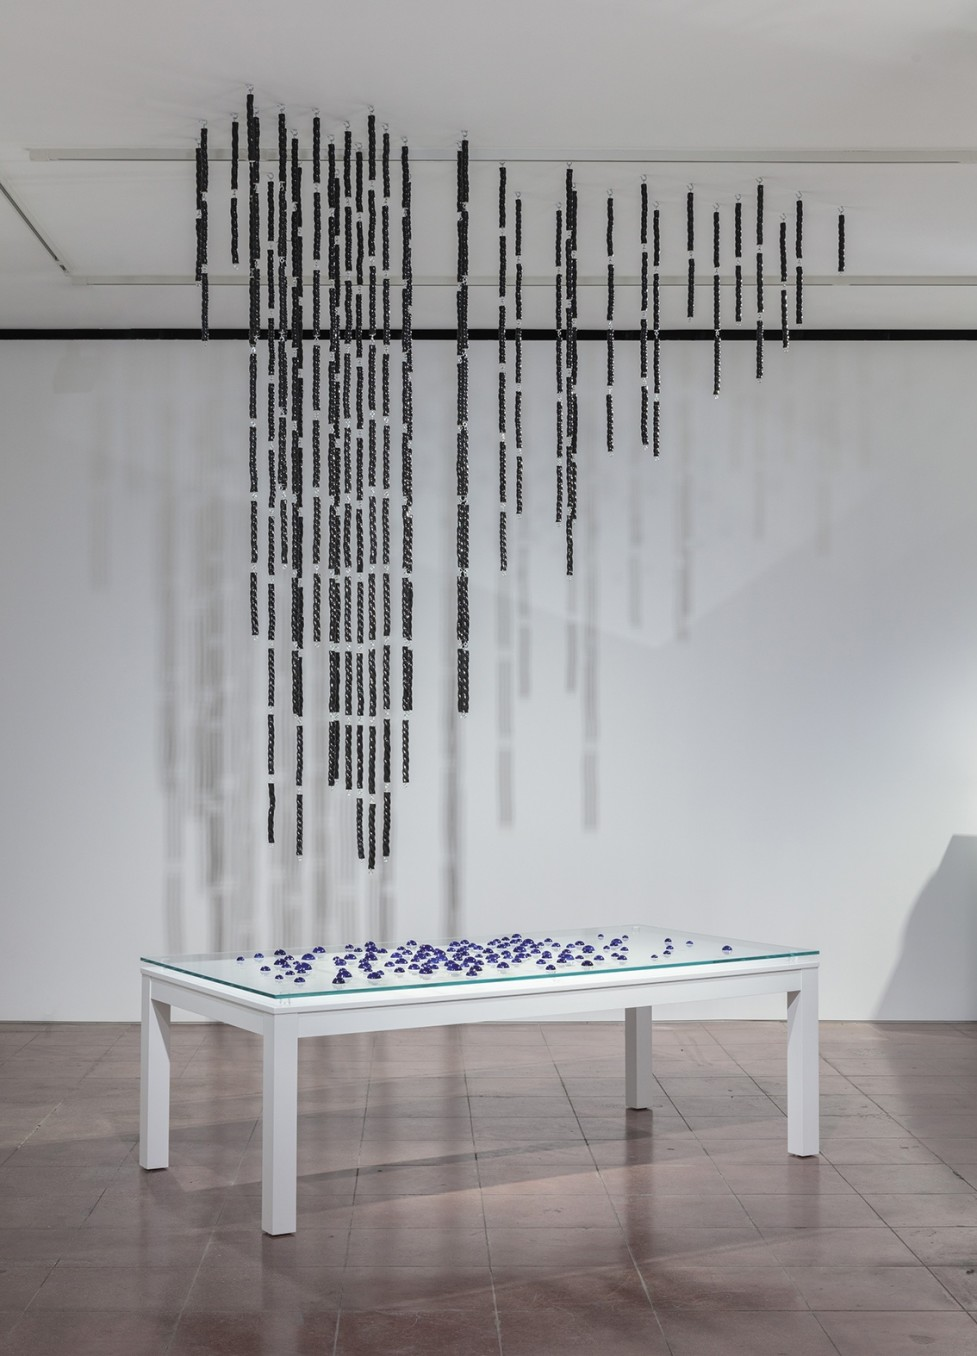 Richard Slee, Rope Rain, 2010, Glazed ceramic with metal hook and eyes in two hundred and twenty four strands and one hundred and twenty nine droplets.